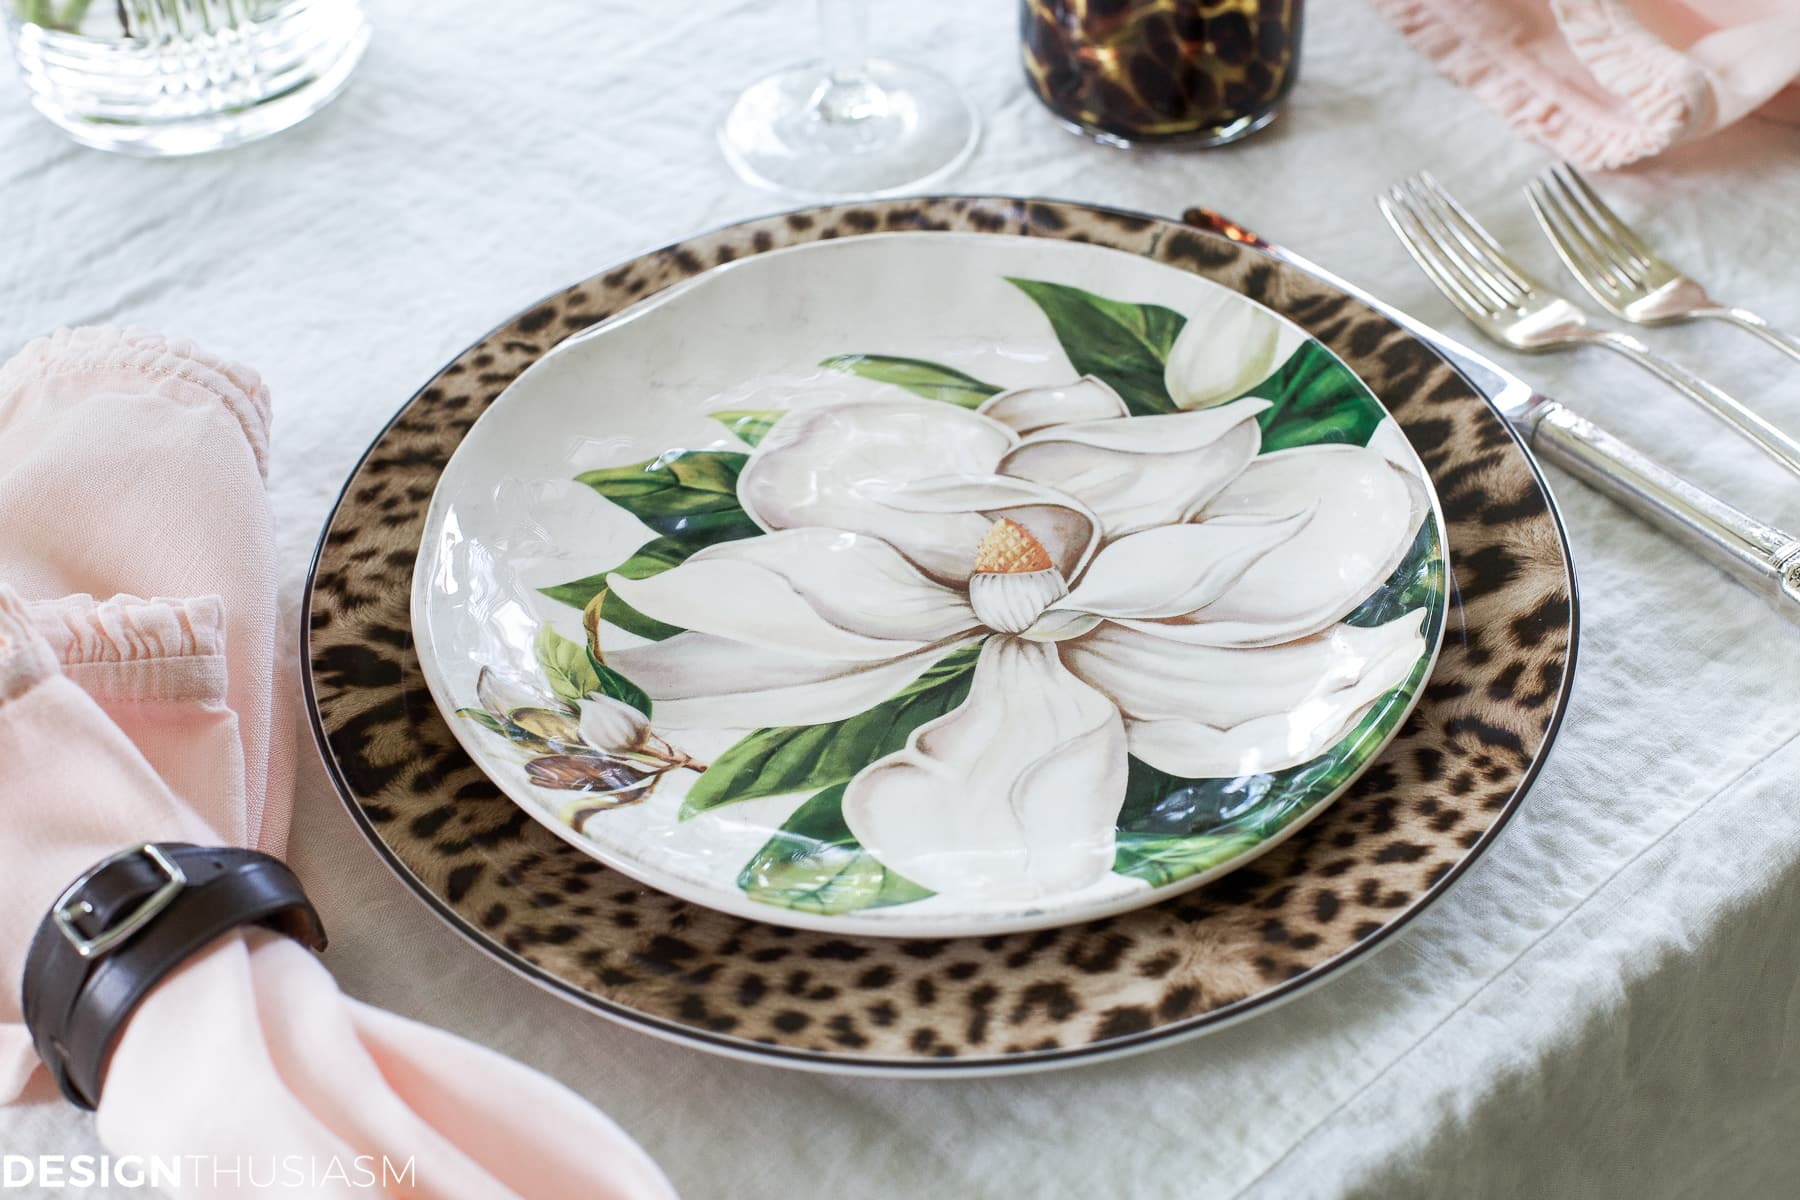 Cool Plates | Mixing Animal Print and Soft Floral in a Tablescape - designthusiasm.com